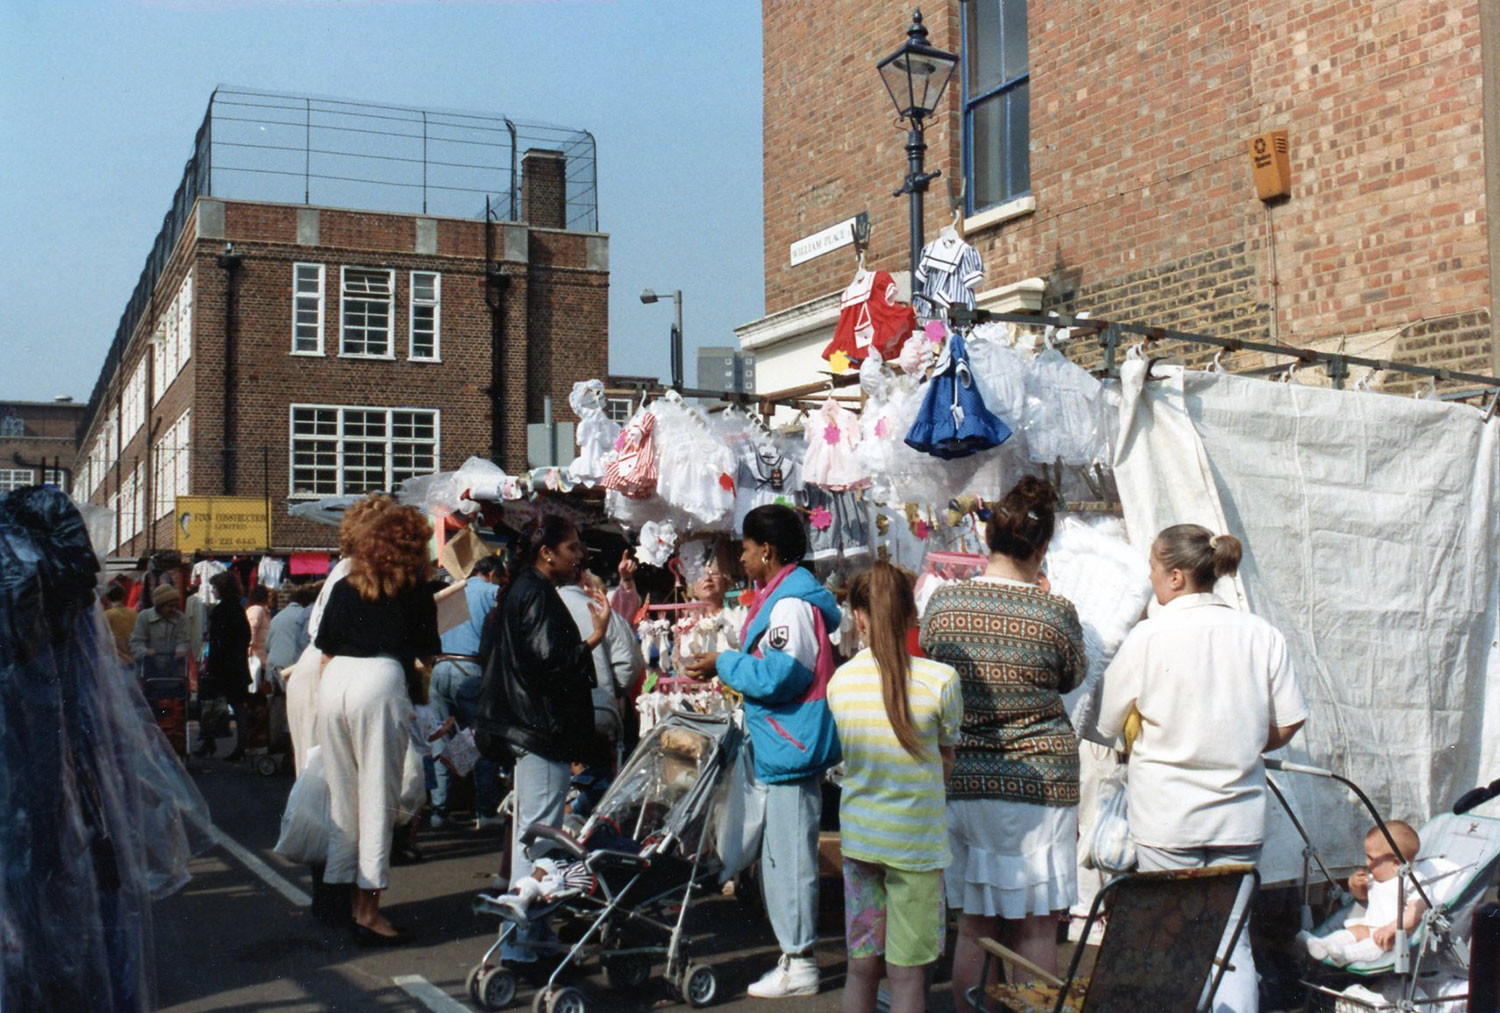 Archive image of Roman Road Market, East London, from 1990s